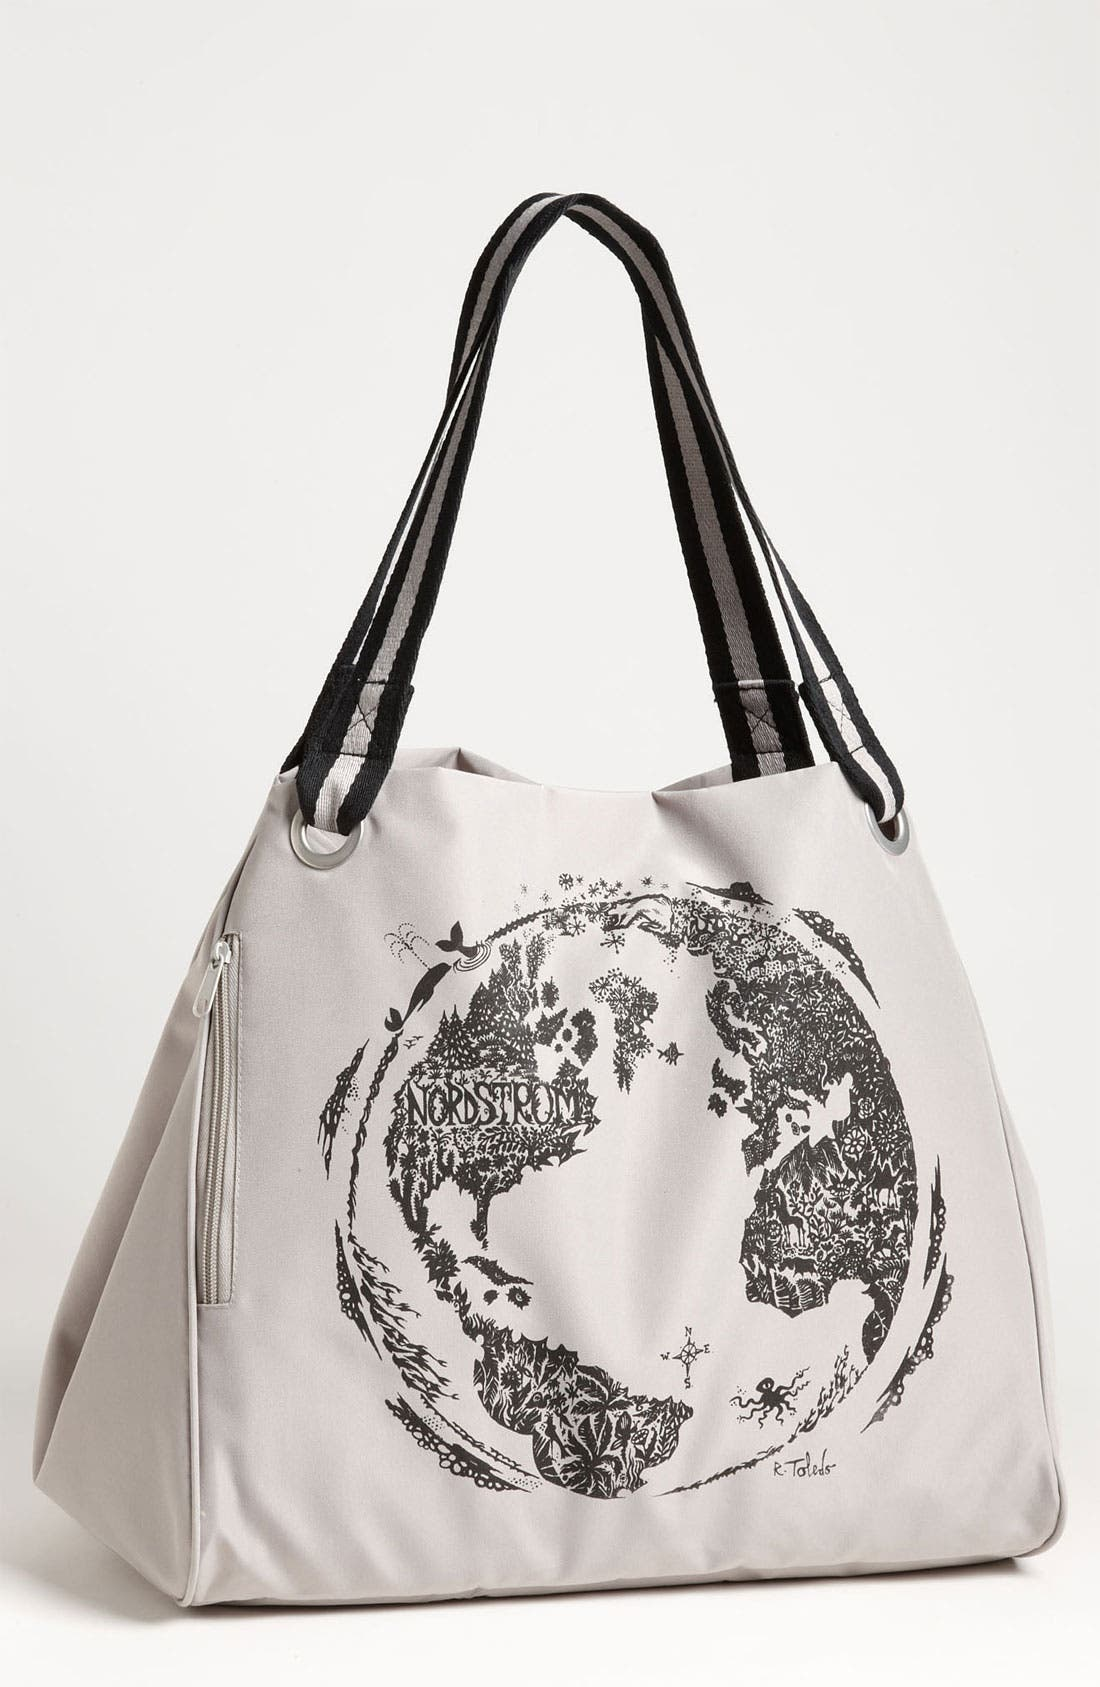 Main Image - Nordstrom Eco Tote